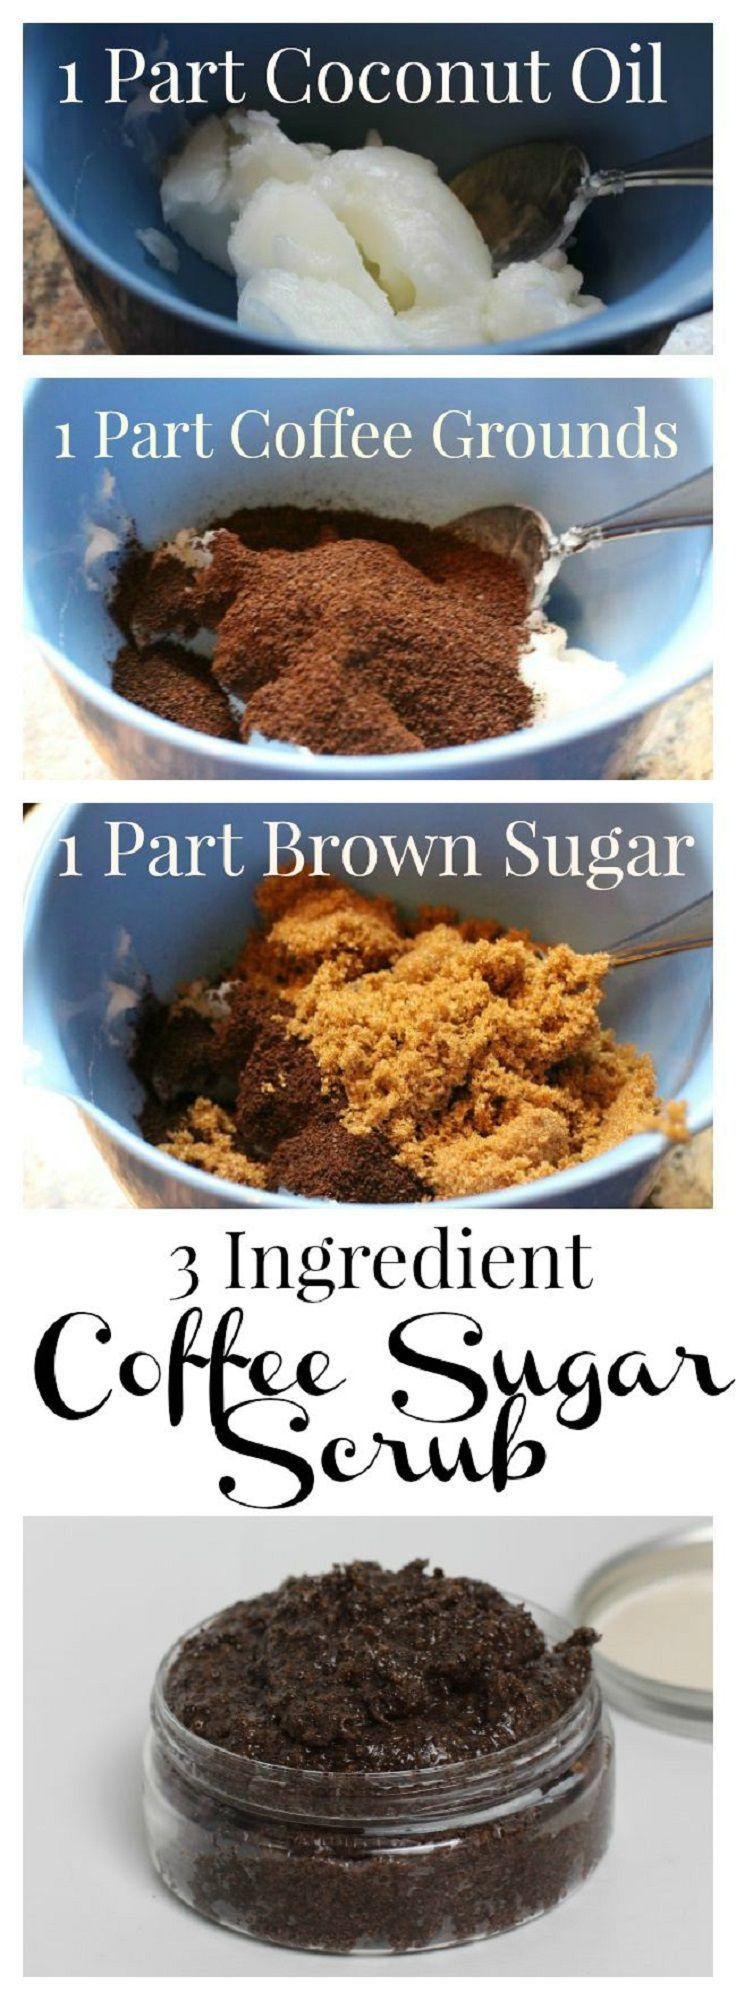 is coffee scrub good for cellulite